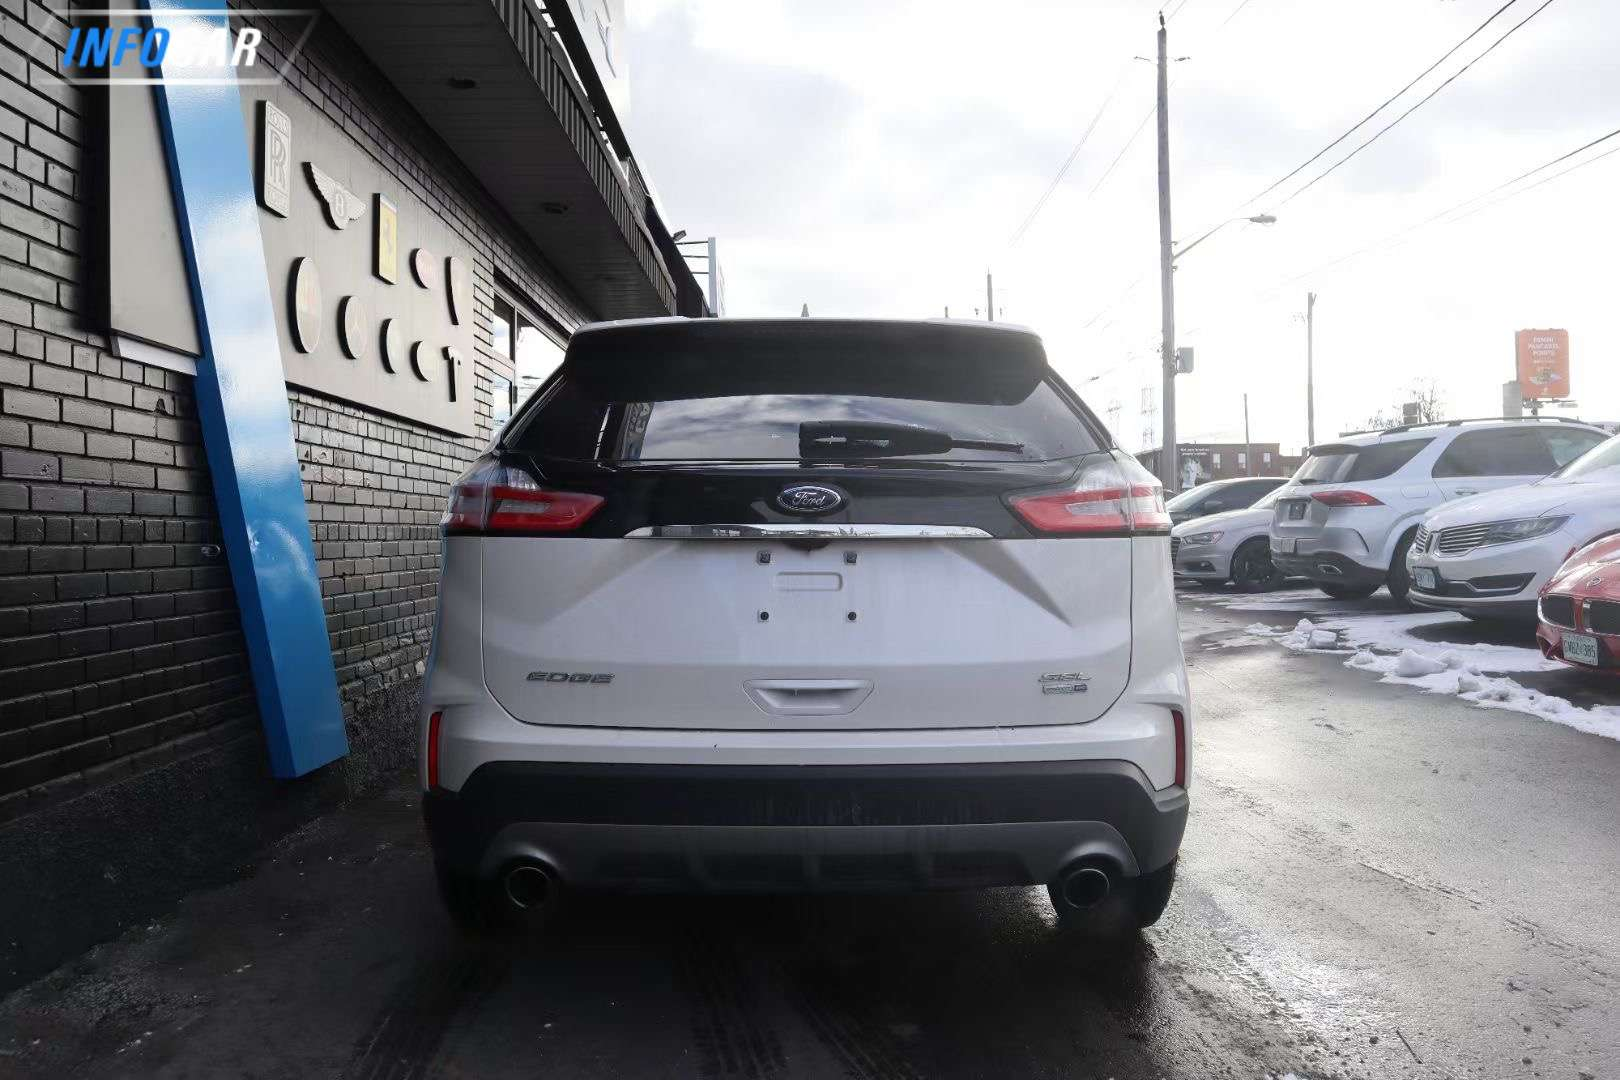 2019 Ford Edge SEL - INFOCAR - Toronto's Most Comprehensive New and Used Auto Trading Platform